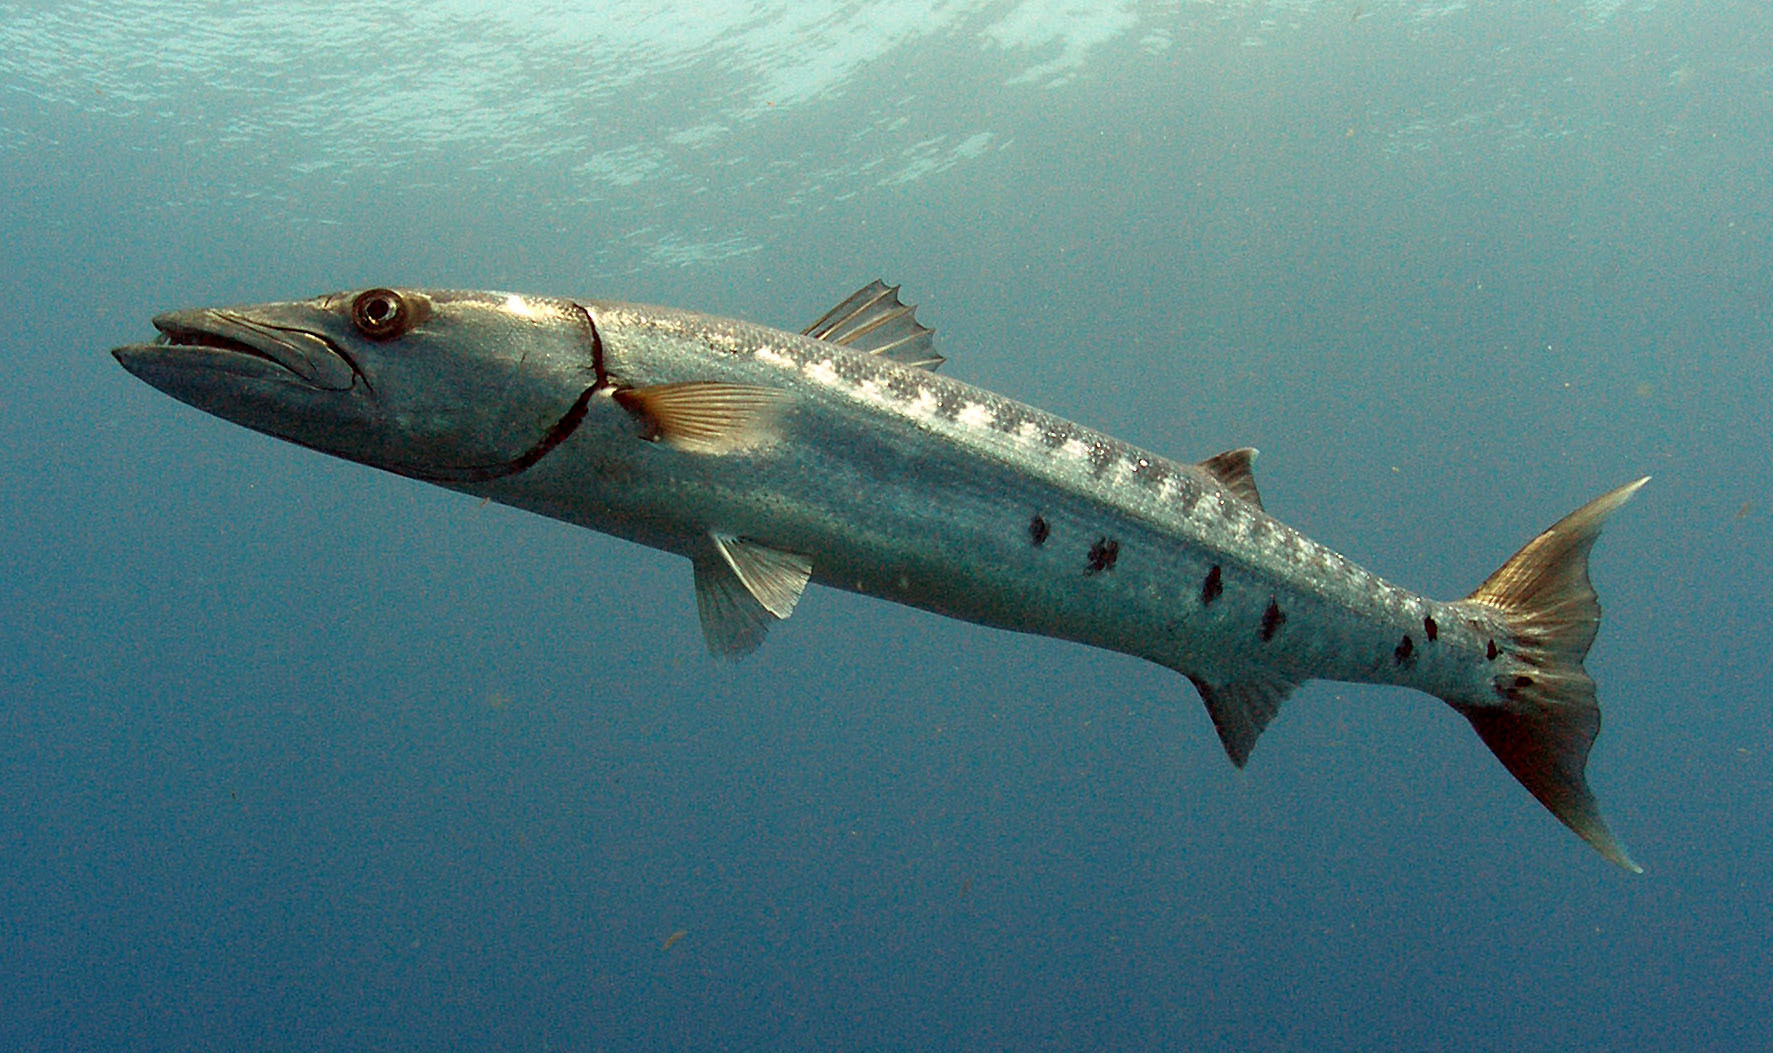 The great barracuda, a coastal predator known for needle ...